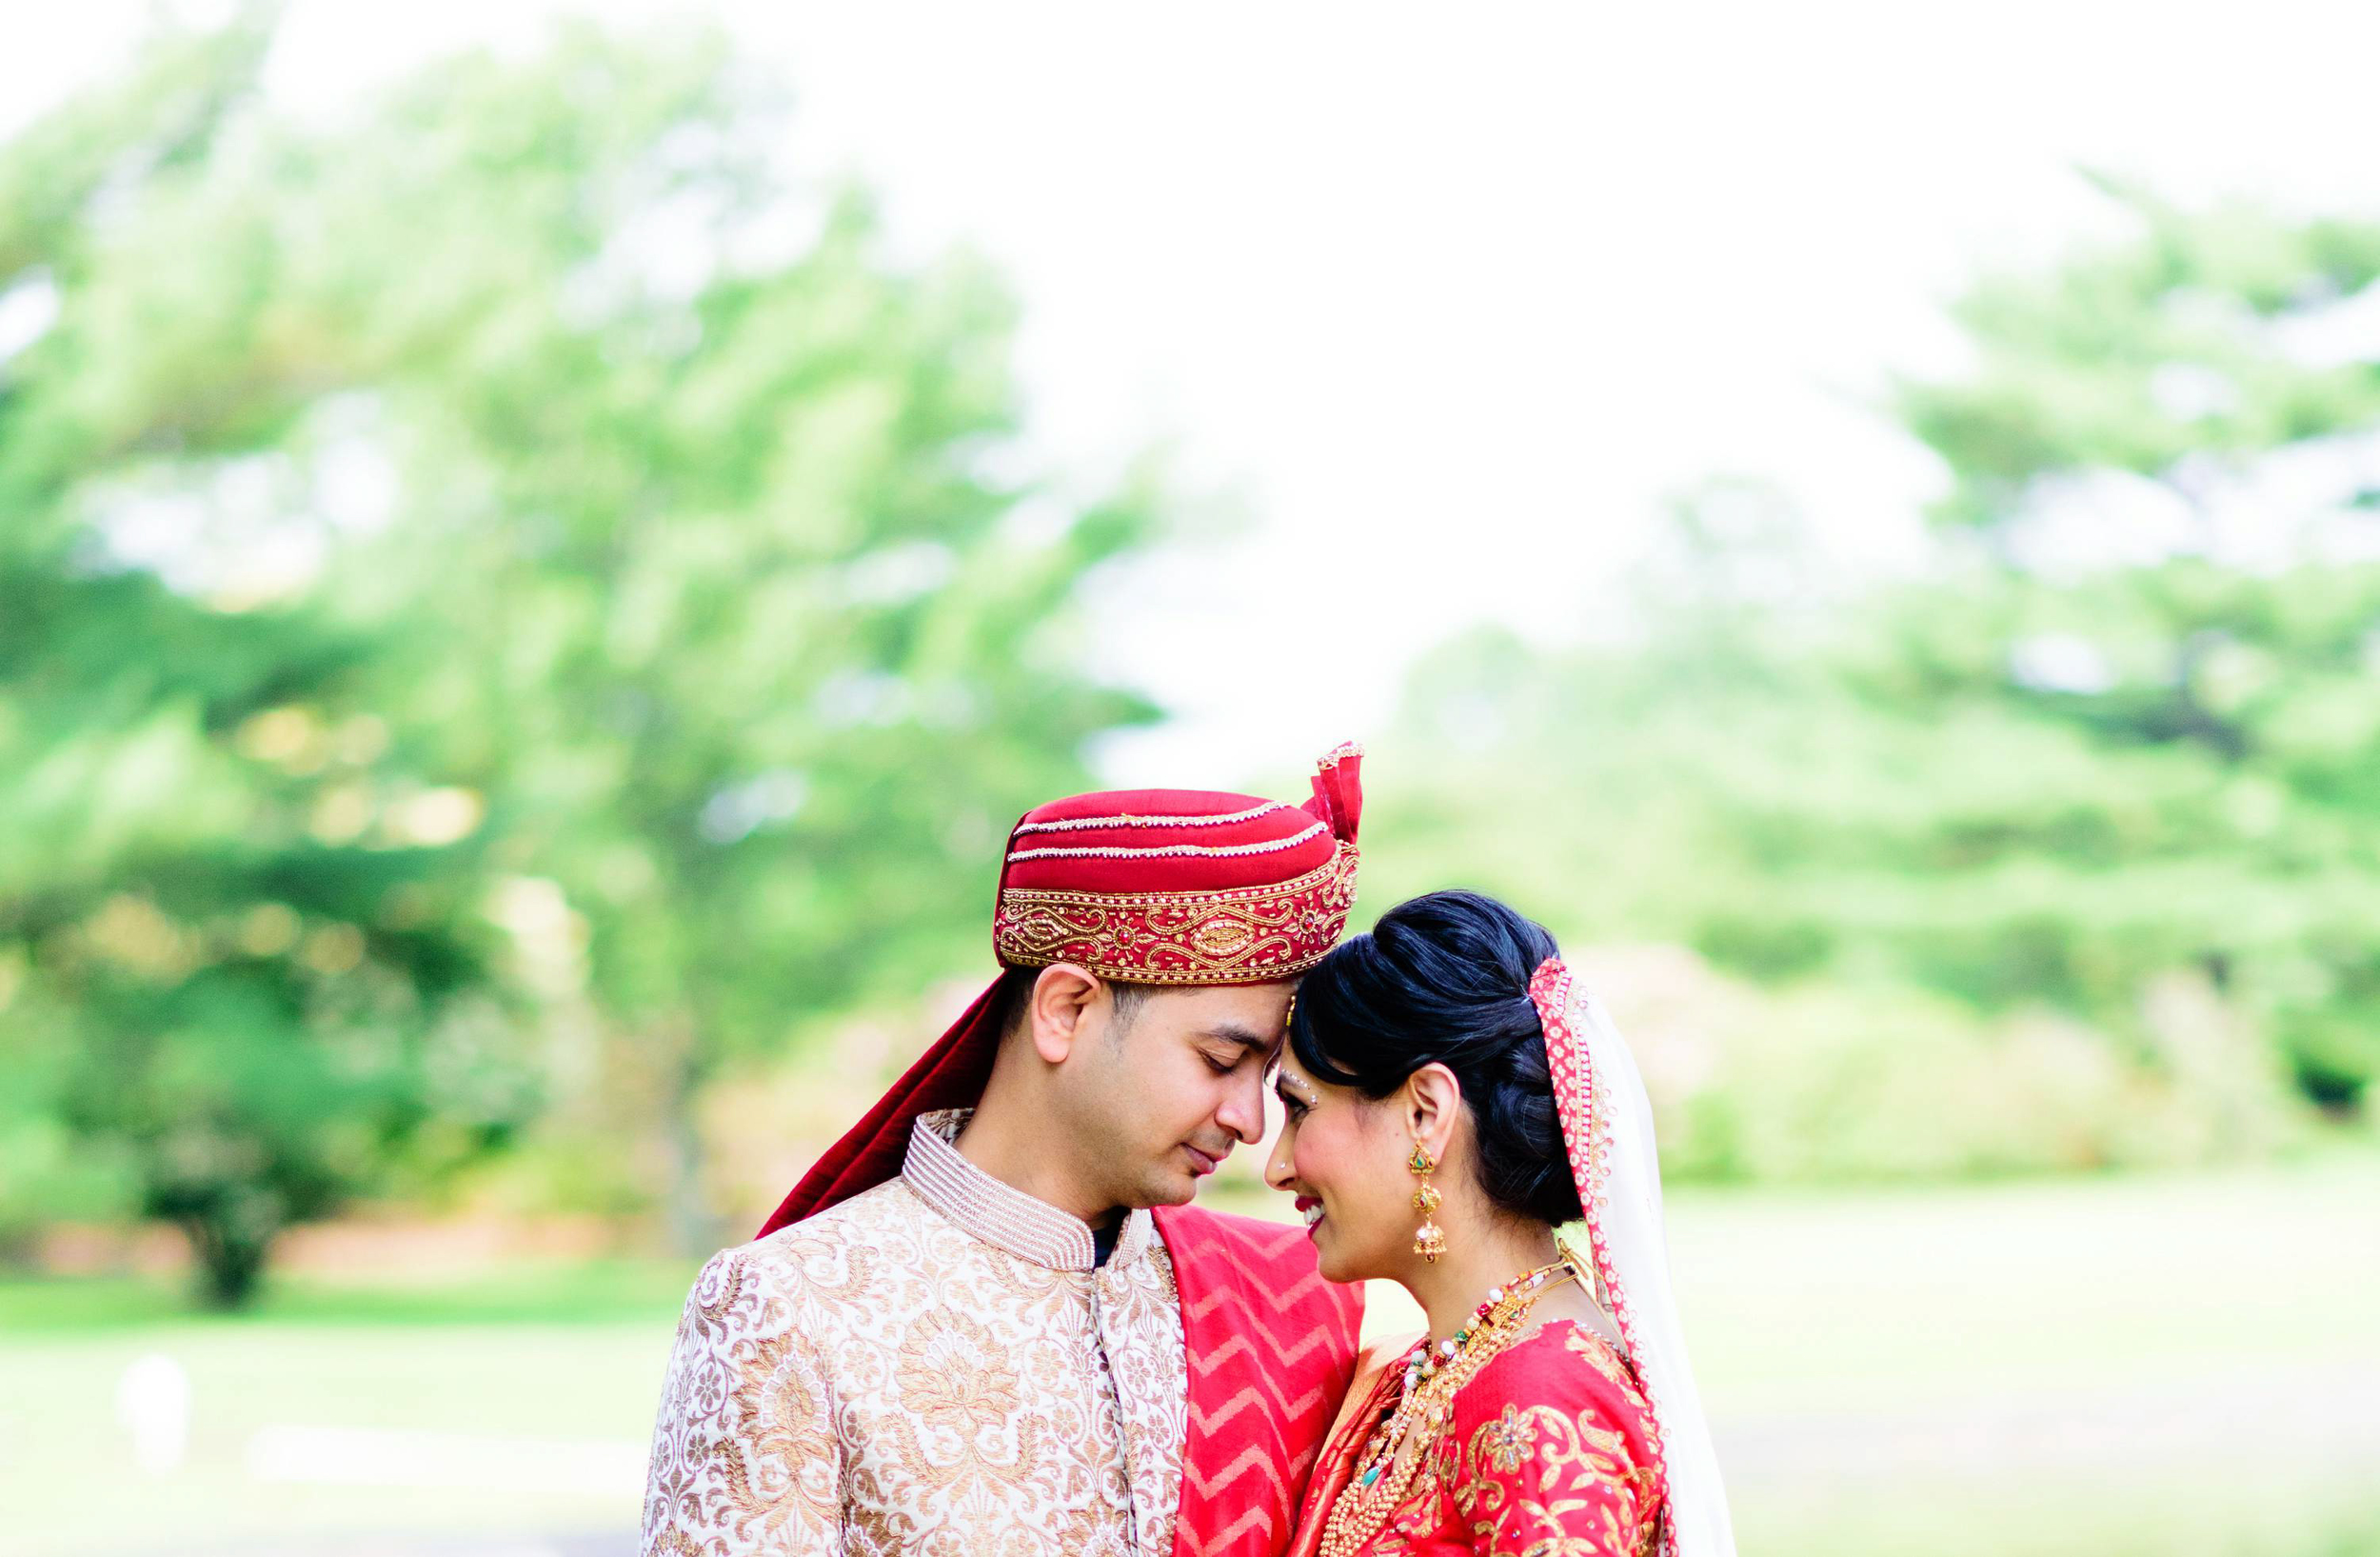 Their expectation from pictures was documentary style and needed guidance when necessary and that's how we shoot. This picture is soothing and perfect to describe their intimacy of their wedding.